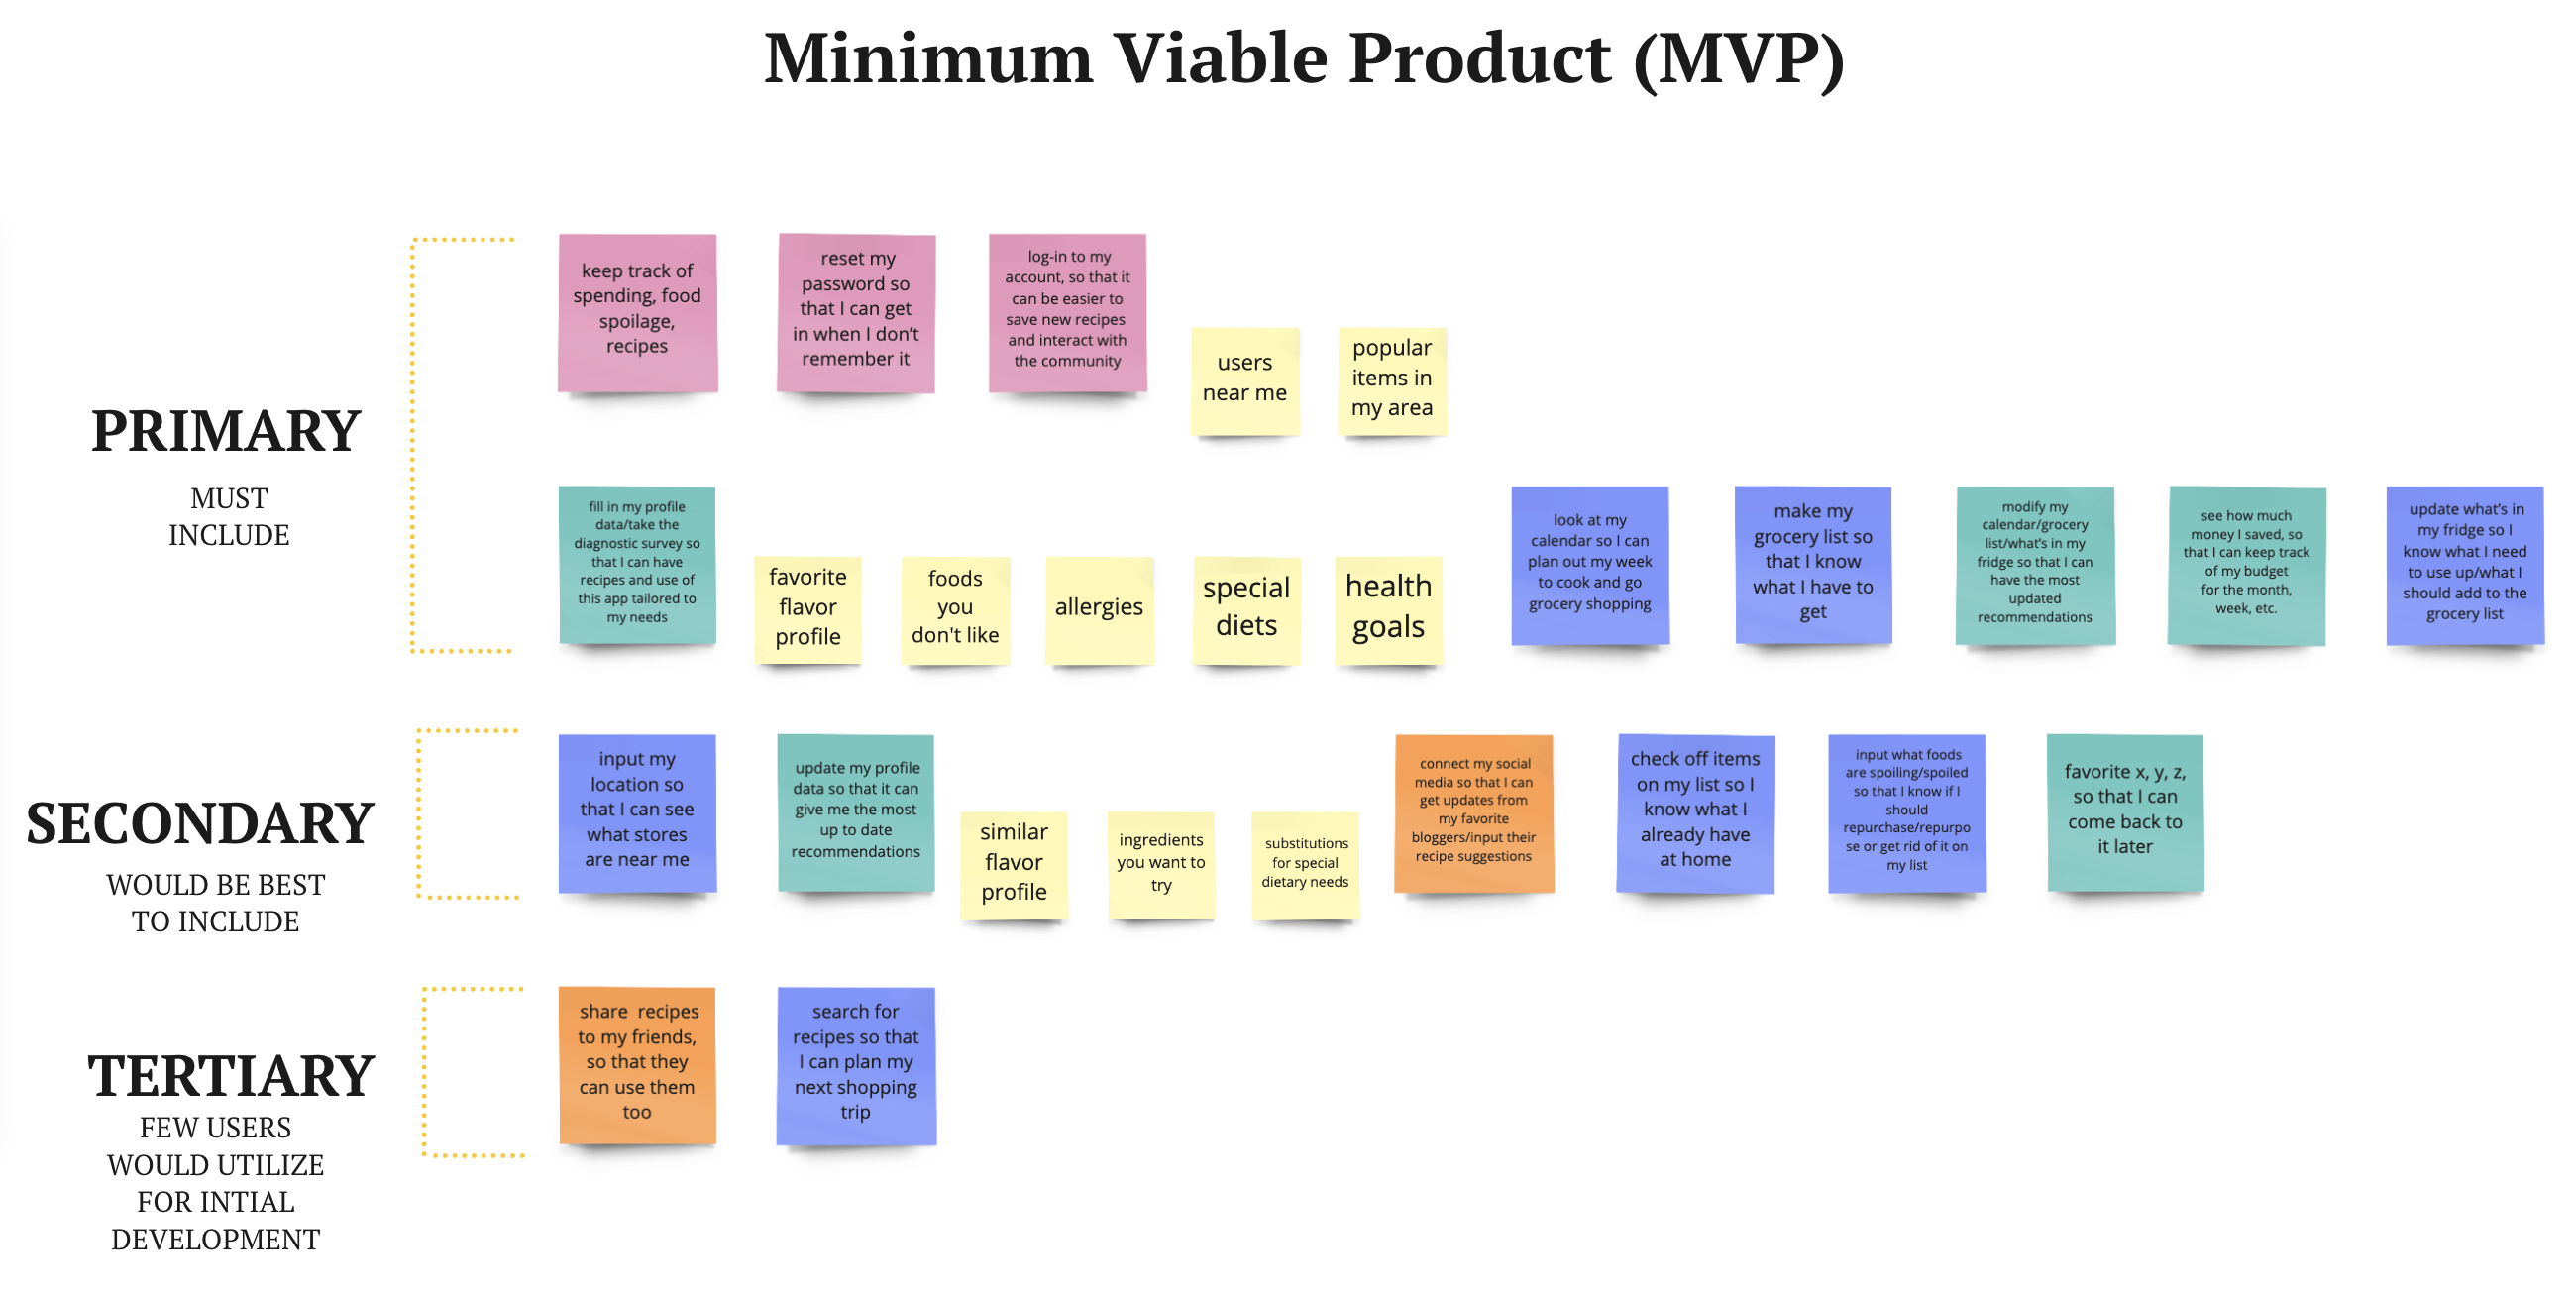 Using the initial MVP list of epics and sub-stories, the final MVP influenced the design decisions based on the most important goals for our users. The goals were taken from highest to lowest priority and placed into Primary, Secondary, and Tertiary goals. Primary goals were the main focus while the other goals were used as optional features, but are not absolutely necessary to our solution.